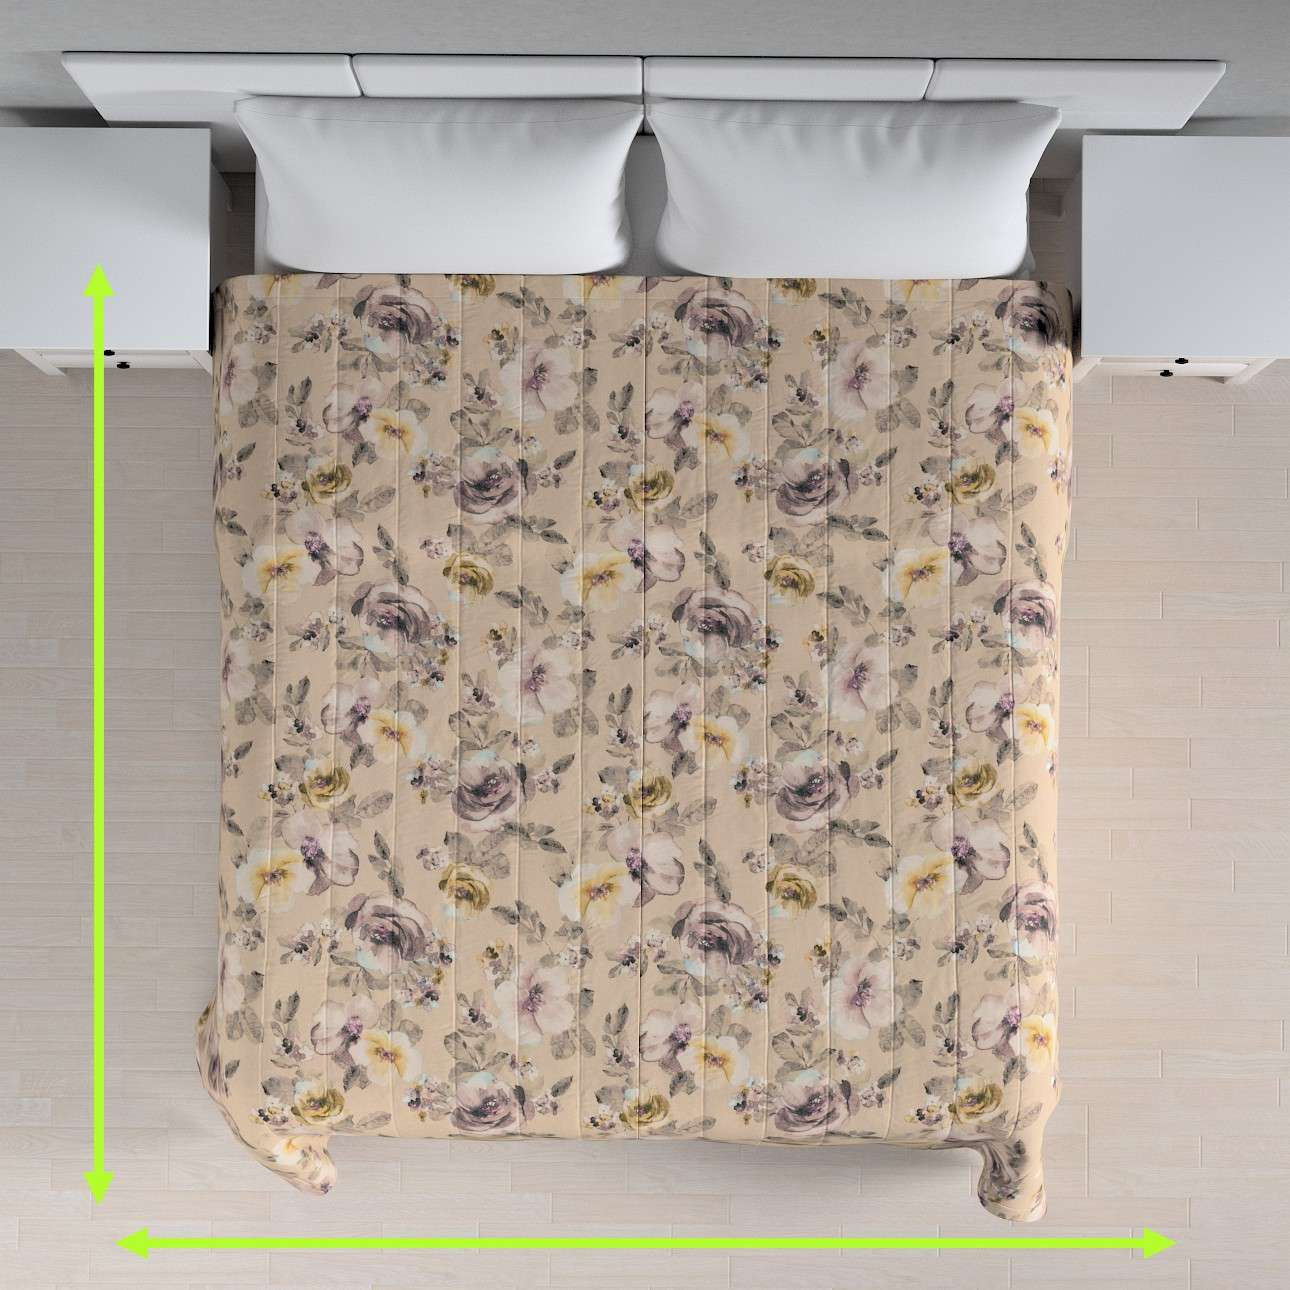 Quilted throw (vertical quilt pattern) in collection Londres, fabric: 140-44